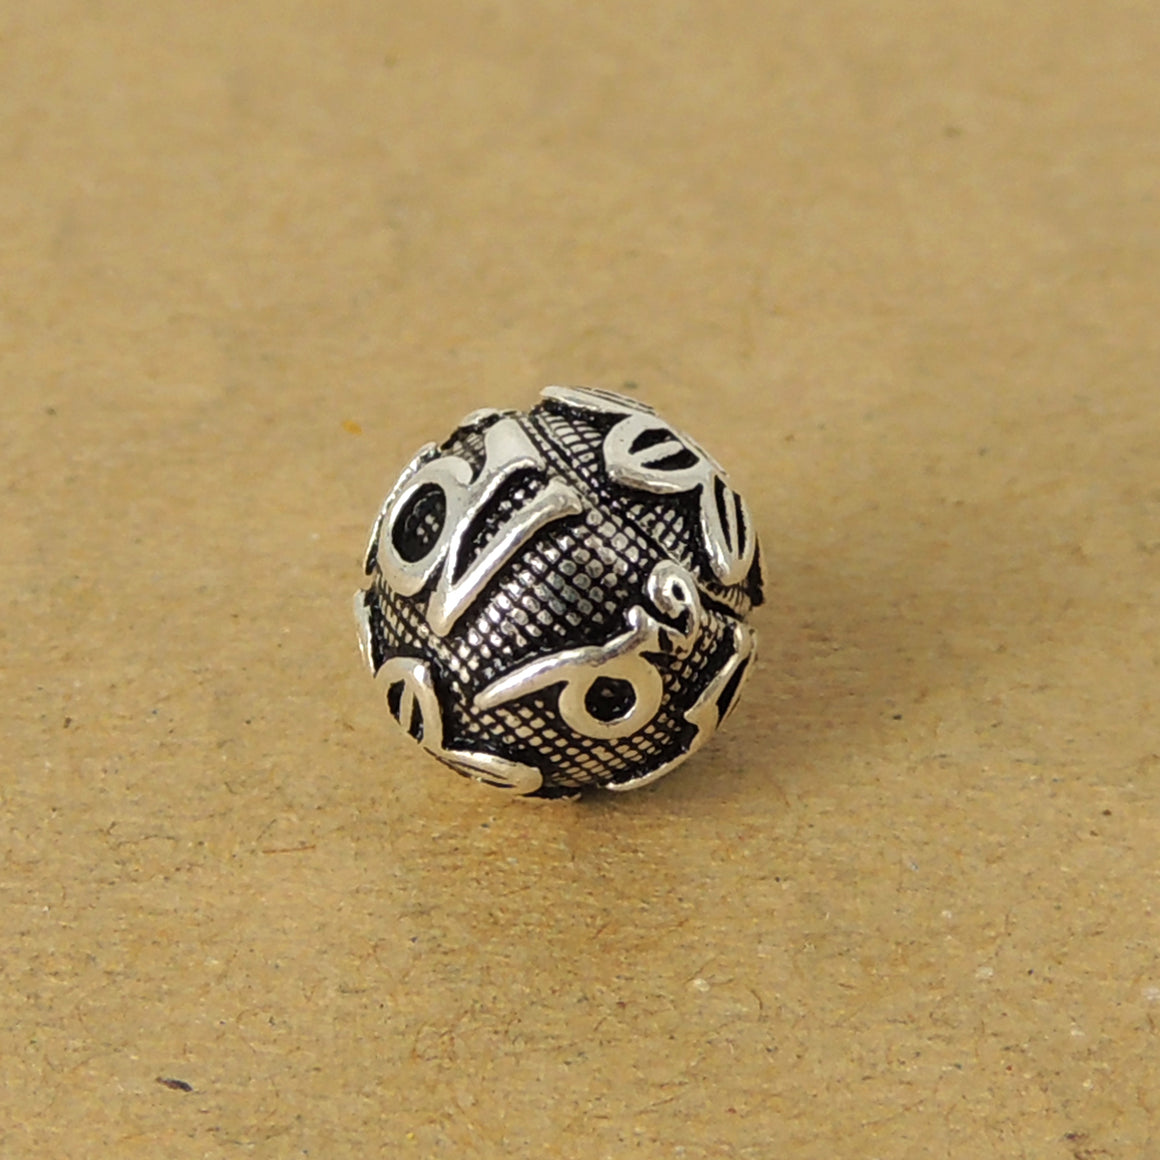 Custom Design Genuine Non-plated 925 Sterling Silver - Calming Yoga Bead with OM Symbol Pattern for DIY Jewelry Making WSP567X1